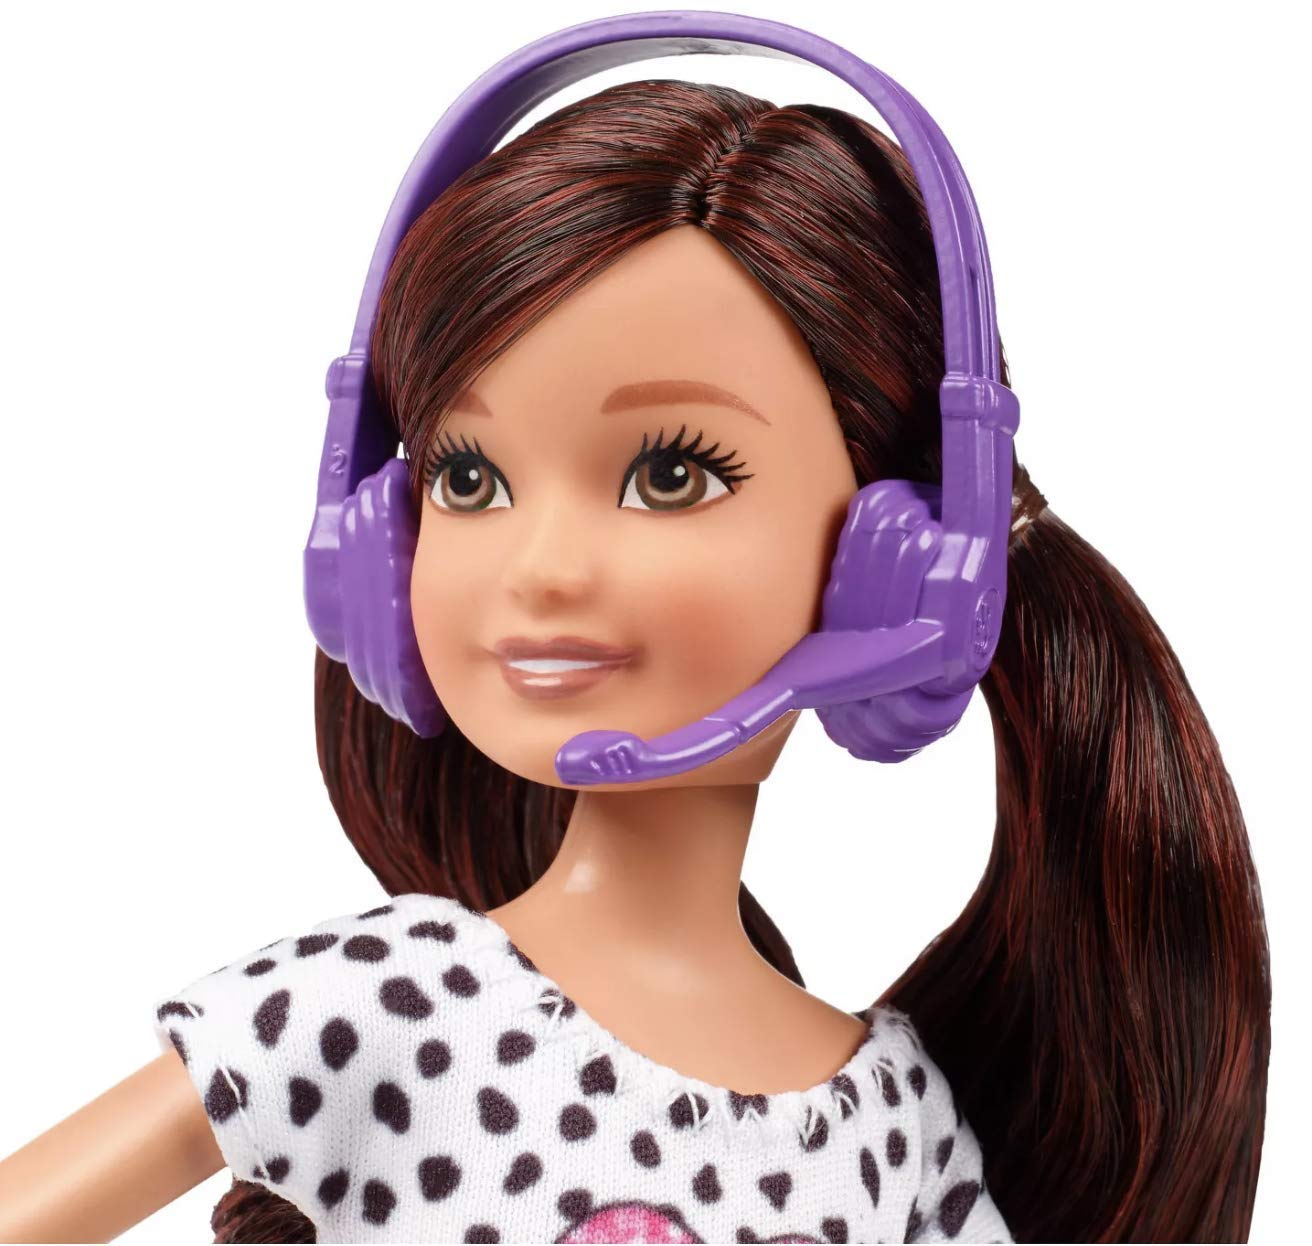 Barbie Team Stacie Friend of Stacie Doll Gaming Playset with Accessories